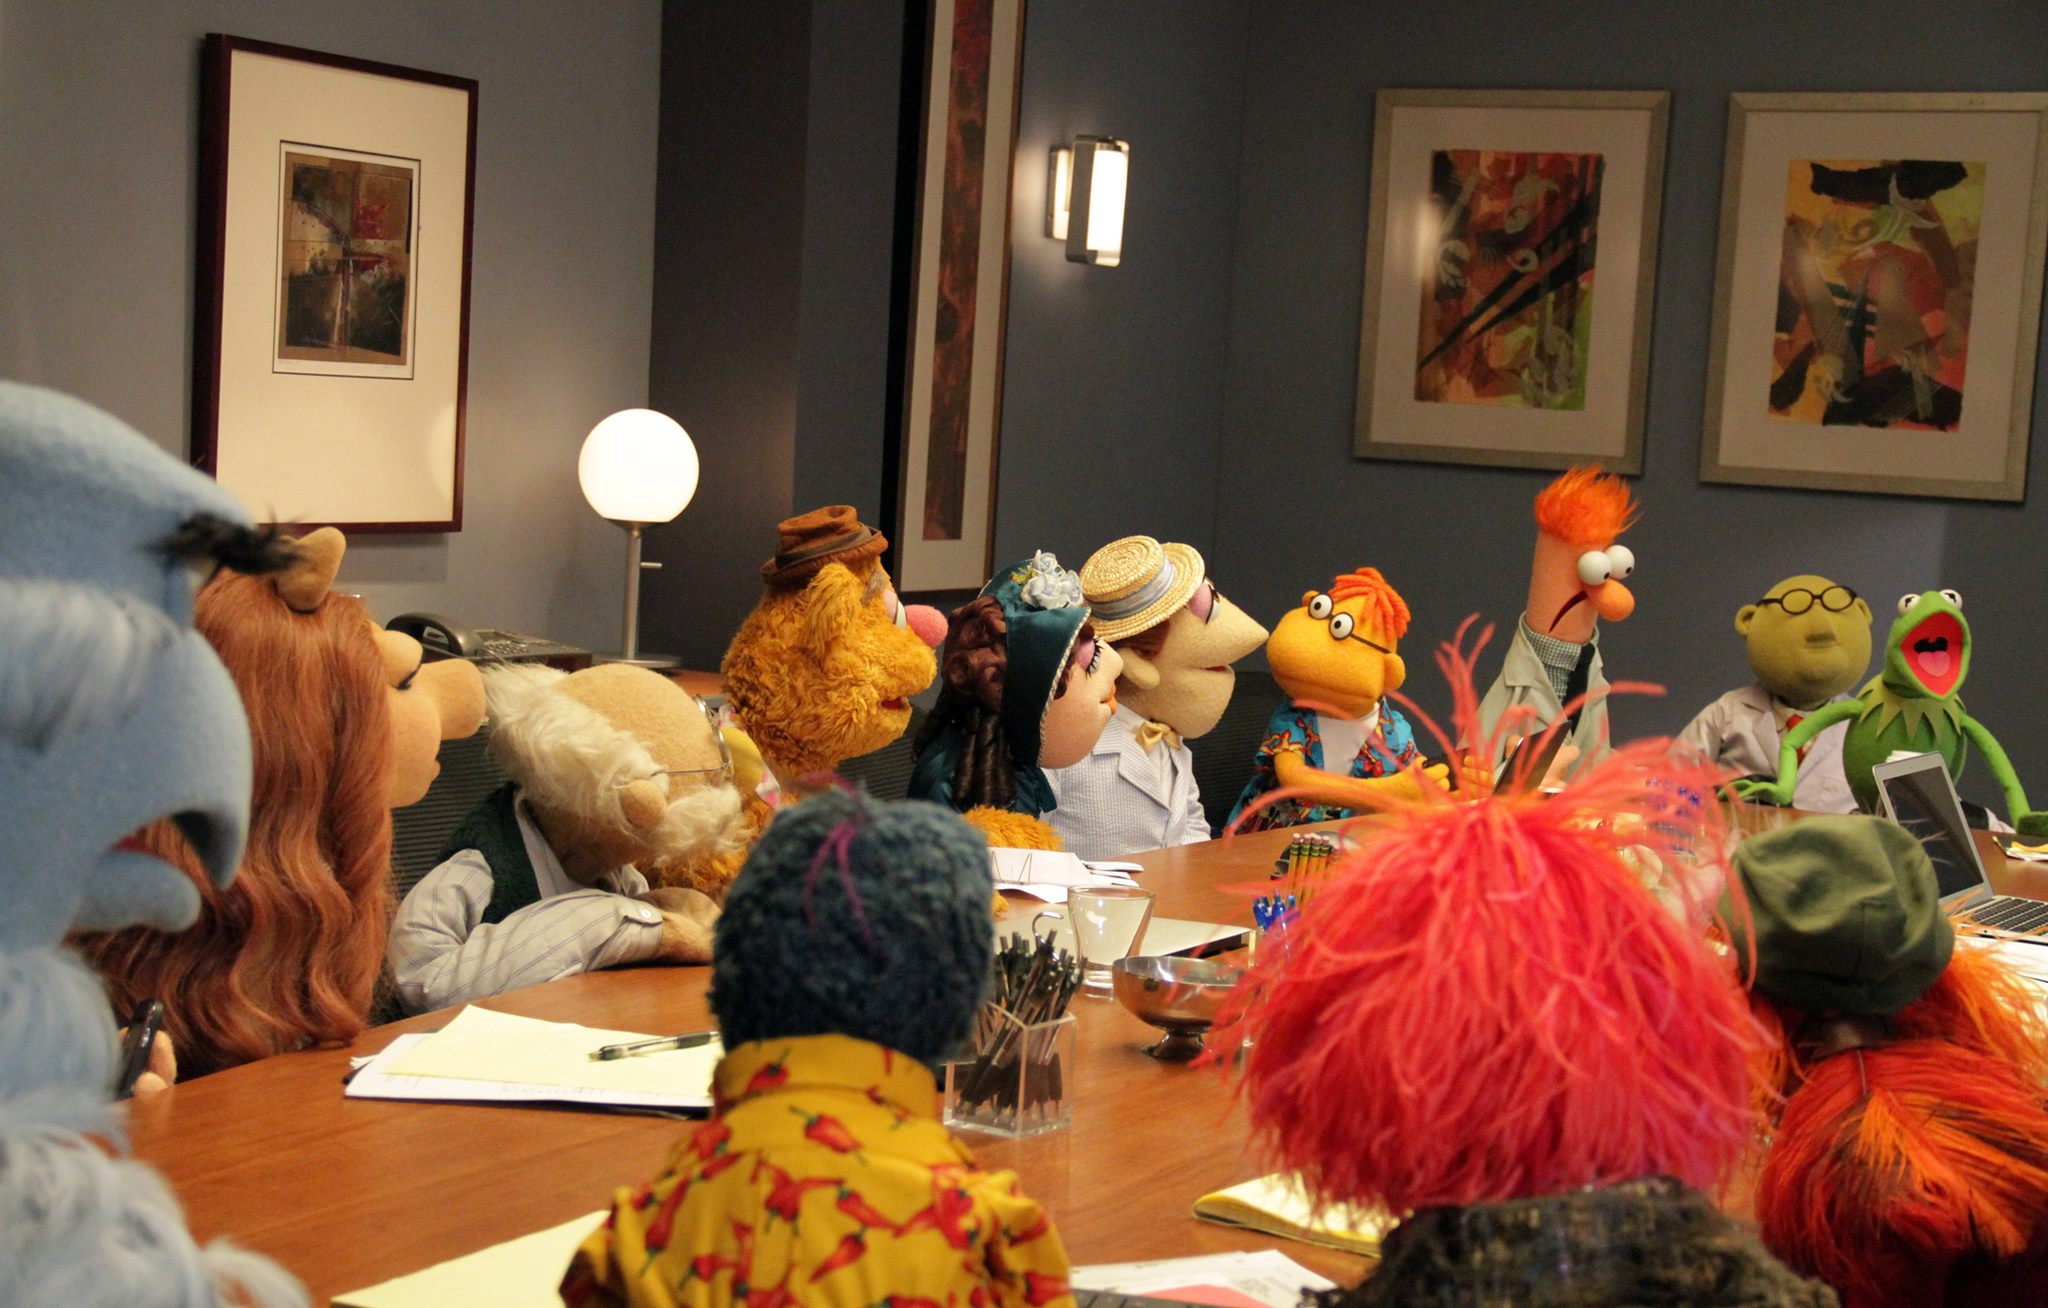 Adult comedy based on the Muppets